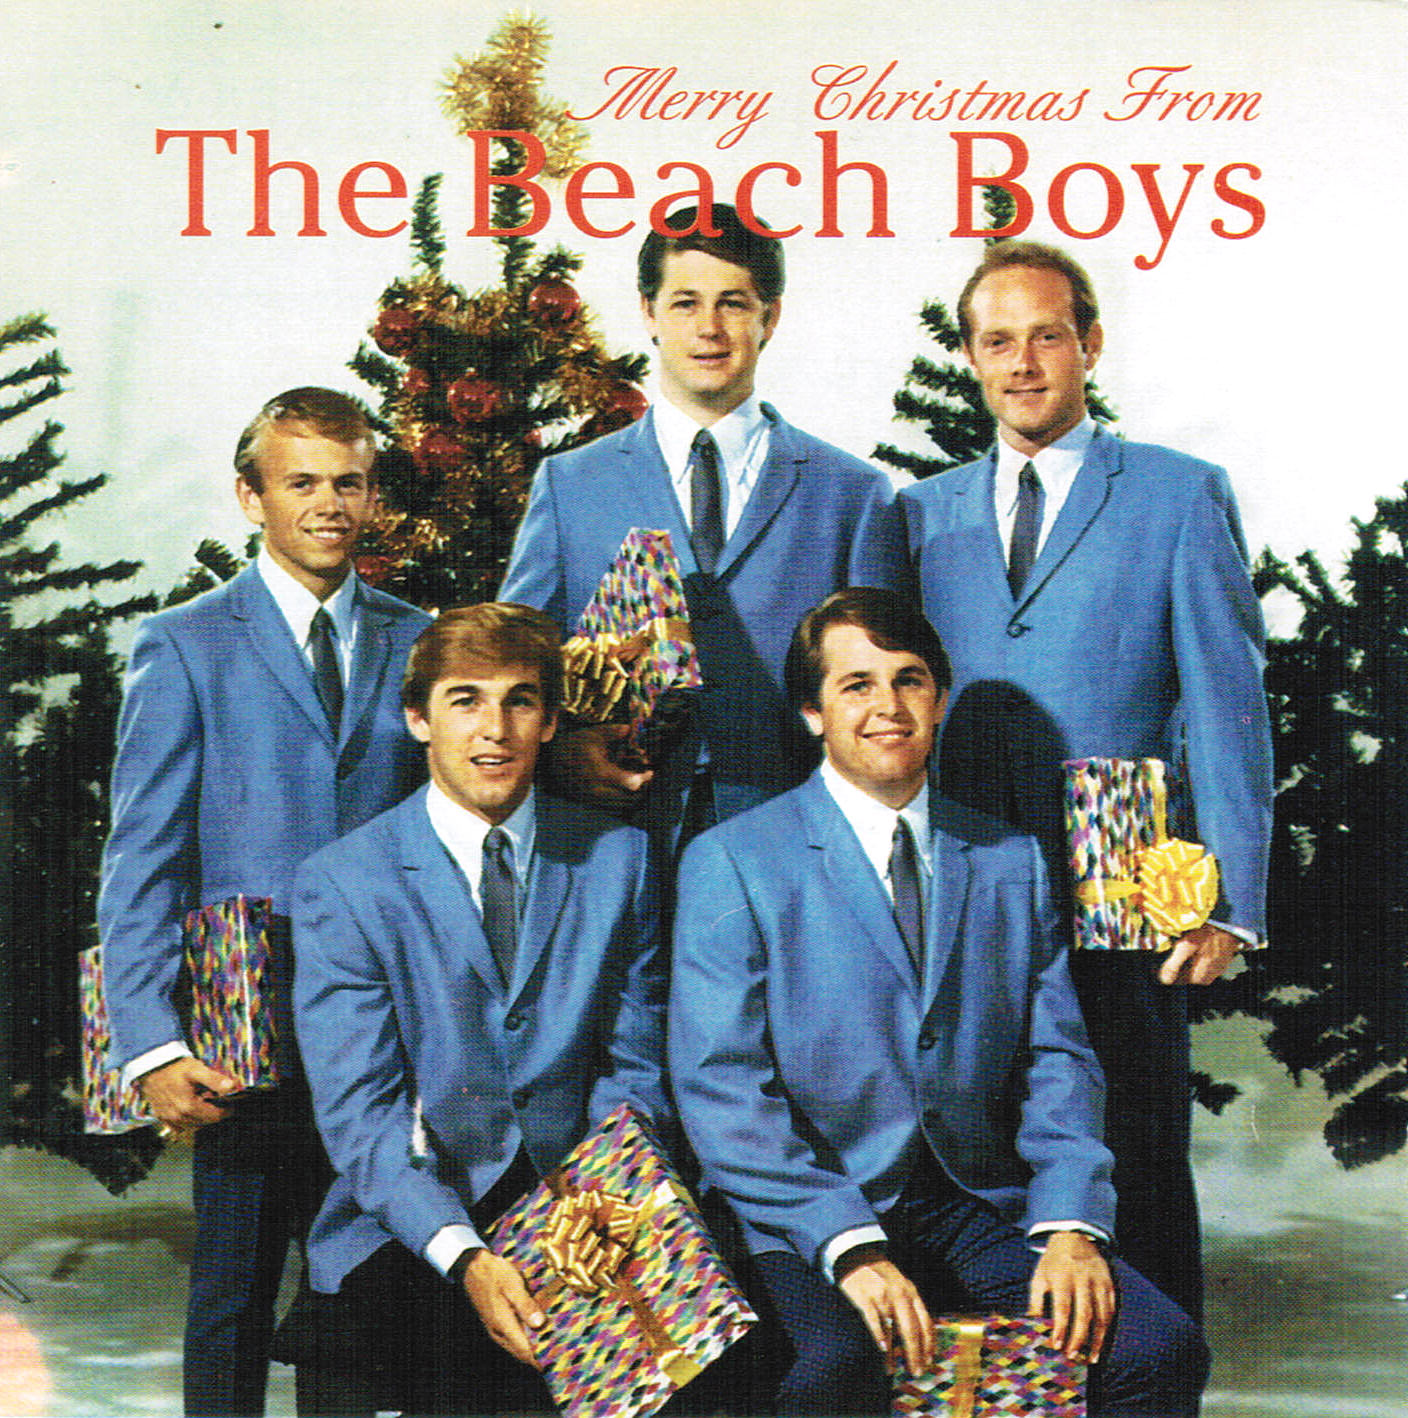 Merry Christmas From The Beach Boys cover